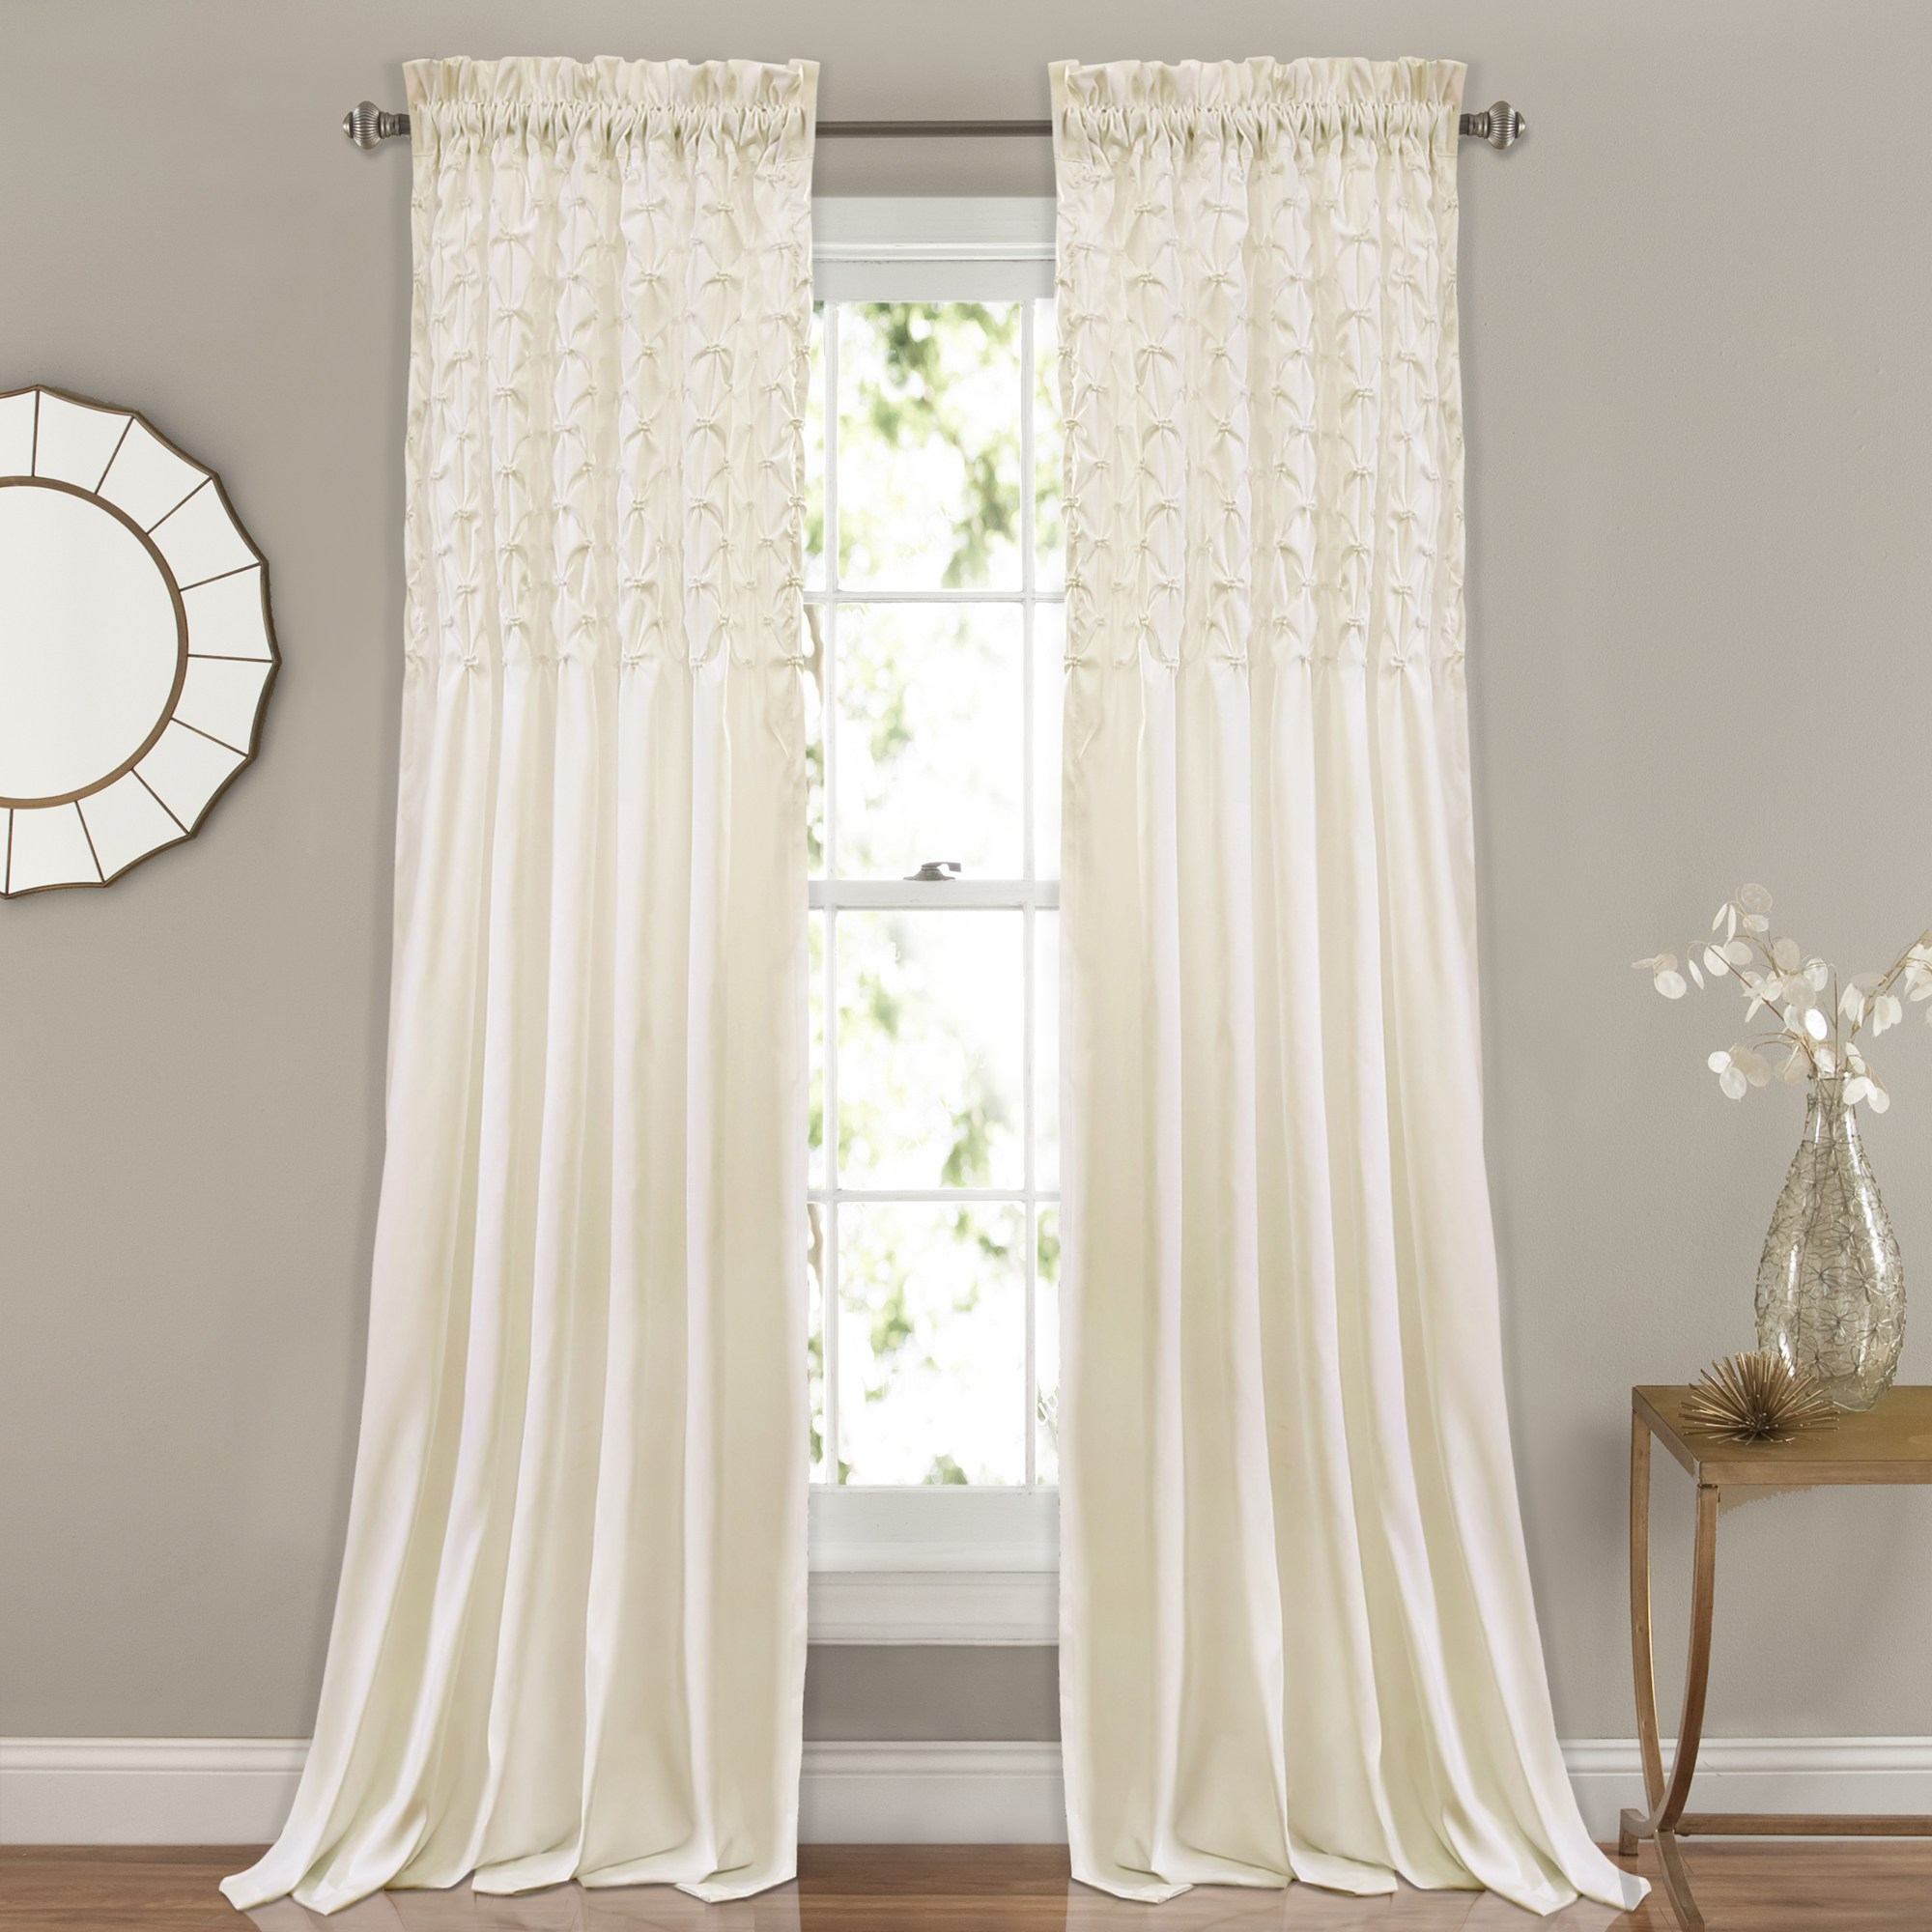 Popular The Gray Barn Sunset Hollow Window Curtain Panel Pair For The Gray Barn Kind Koala Curtain Panel Pairs (View 5 of 20)